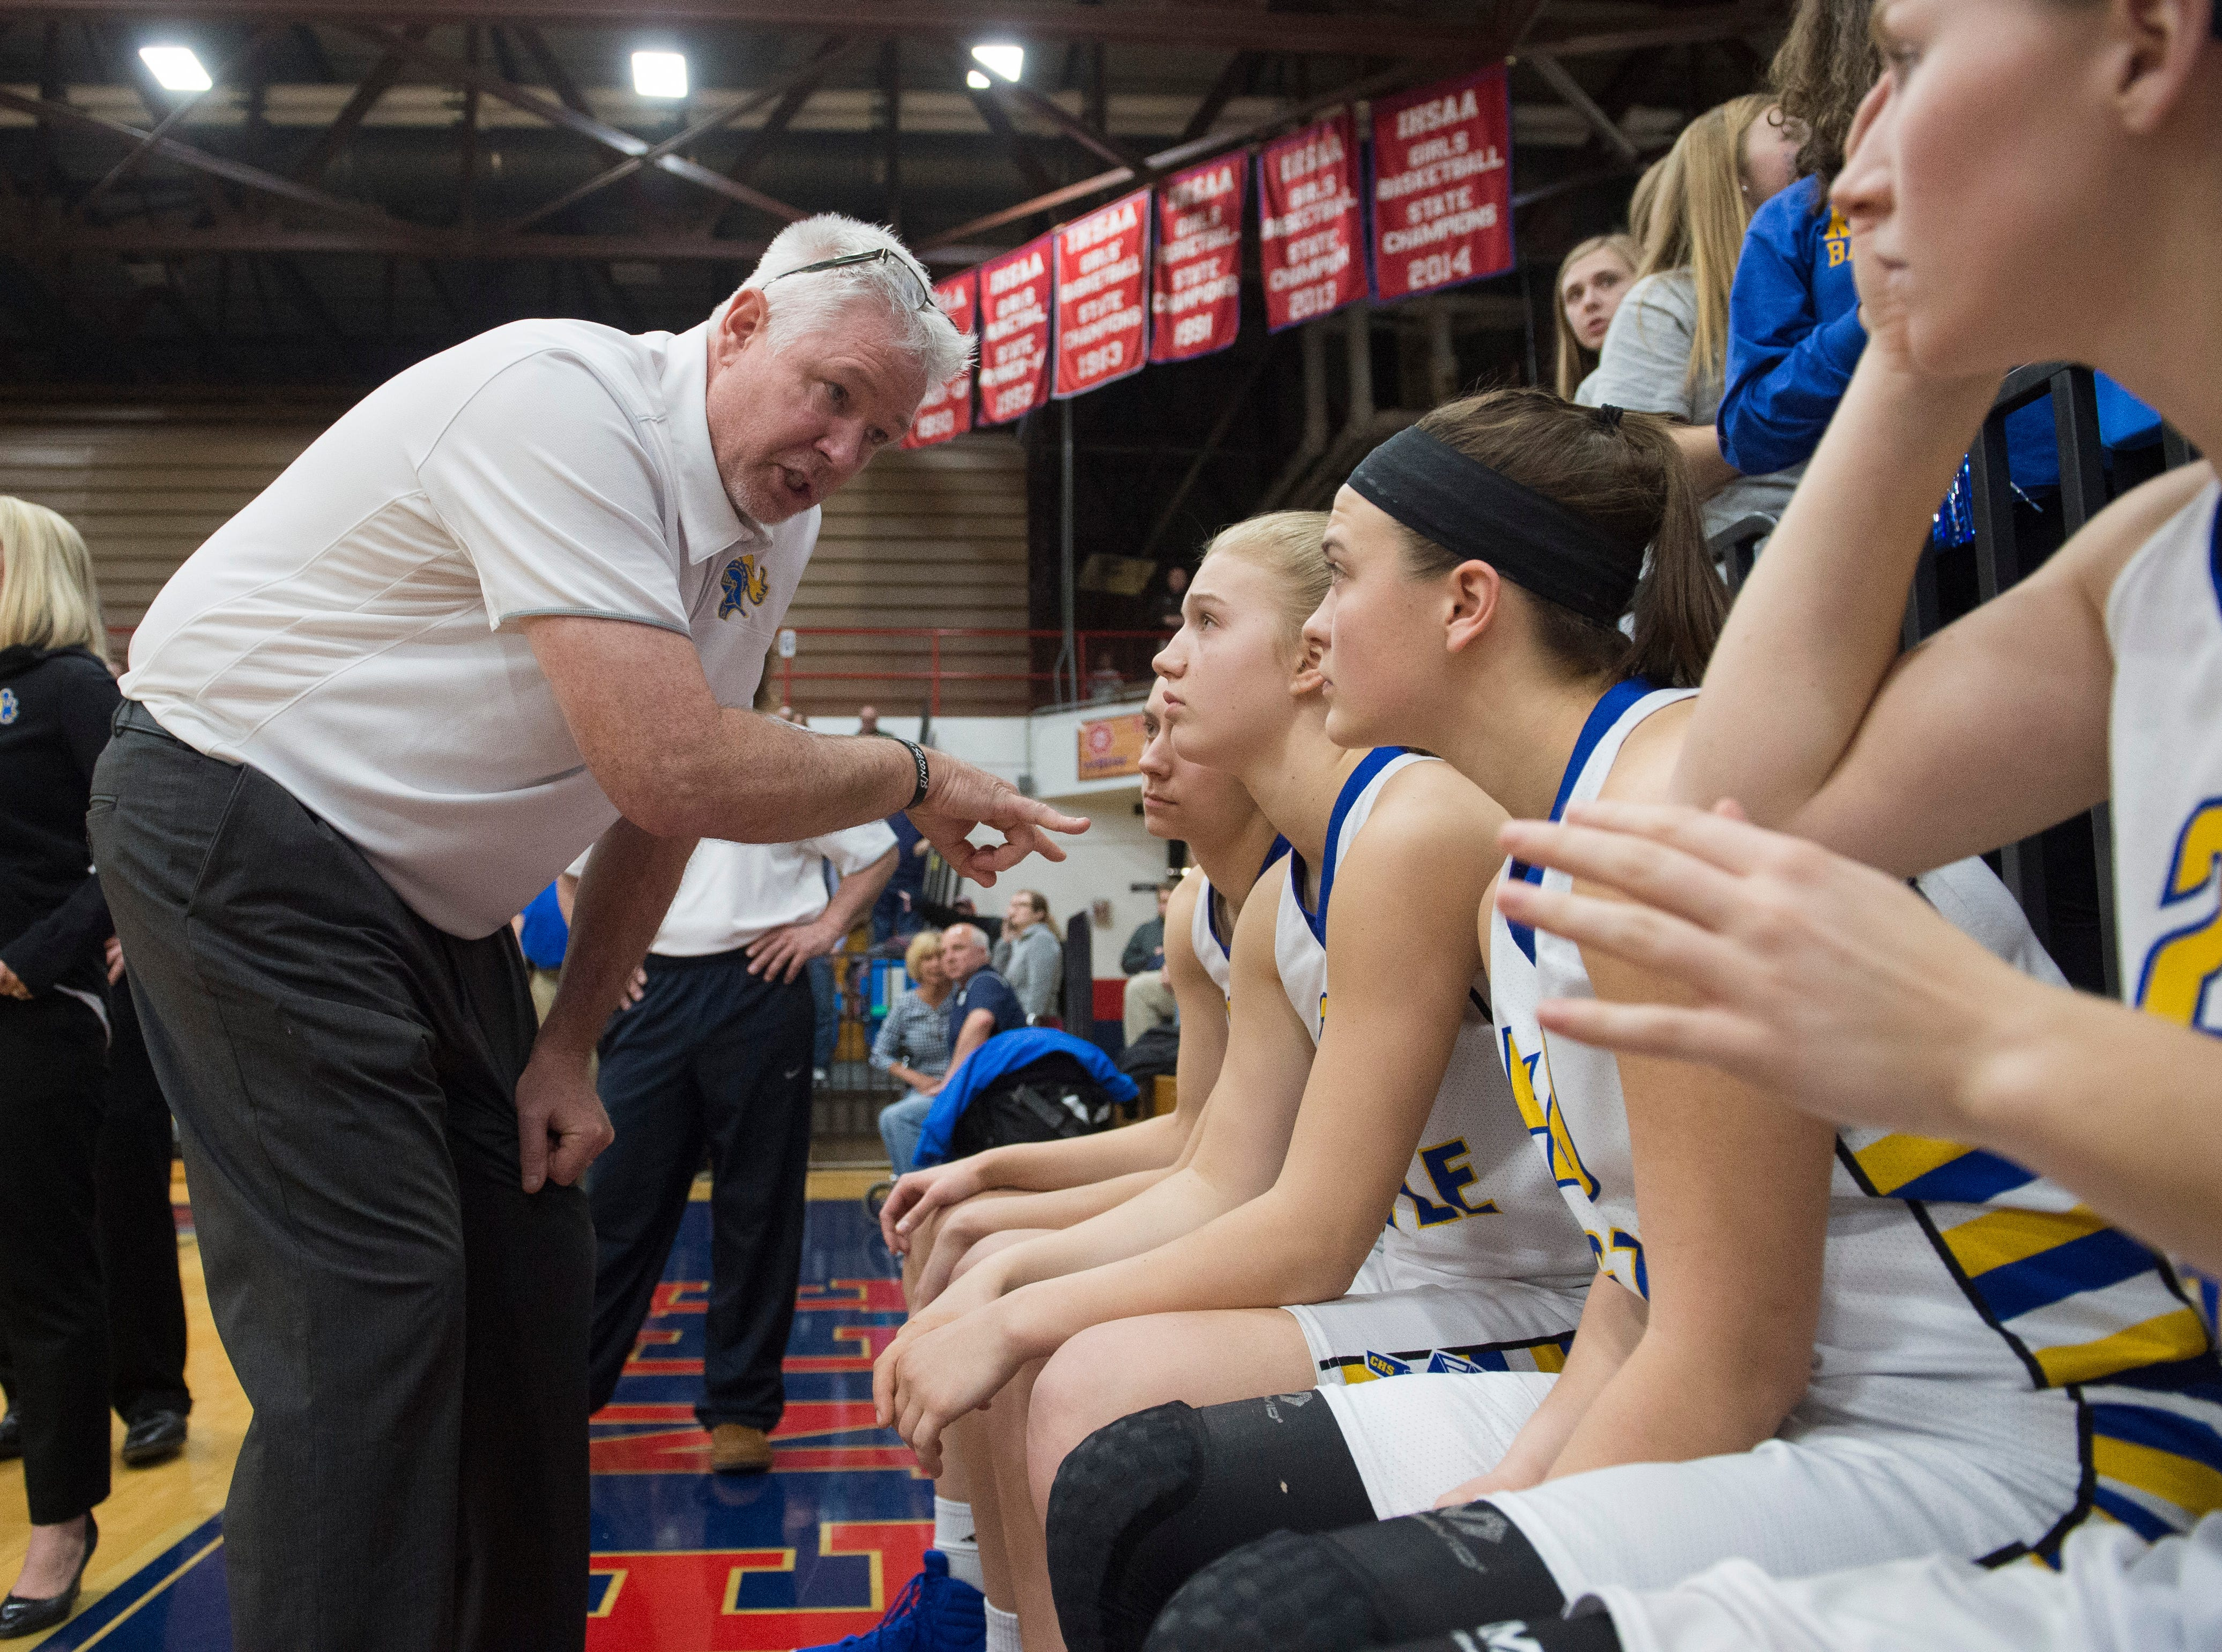 Castle Head Coach Robert Meier instructs the girls basketball team before the IHSAA Girls Basketball Class 4A Regional Championship game against the Bedford North Lawrence Lady Stars at the Stars Field House in Bedford, Ind. Saturday, Feb. 9, 2019.